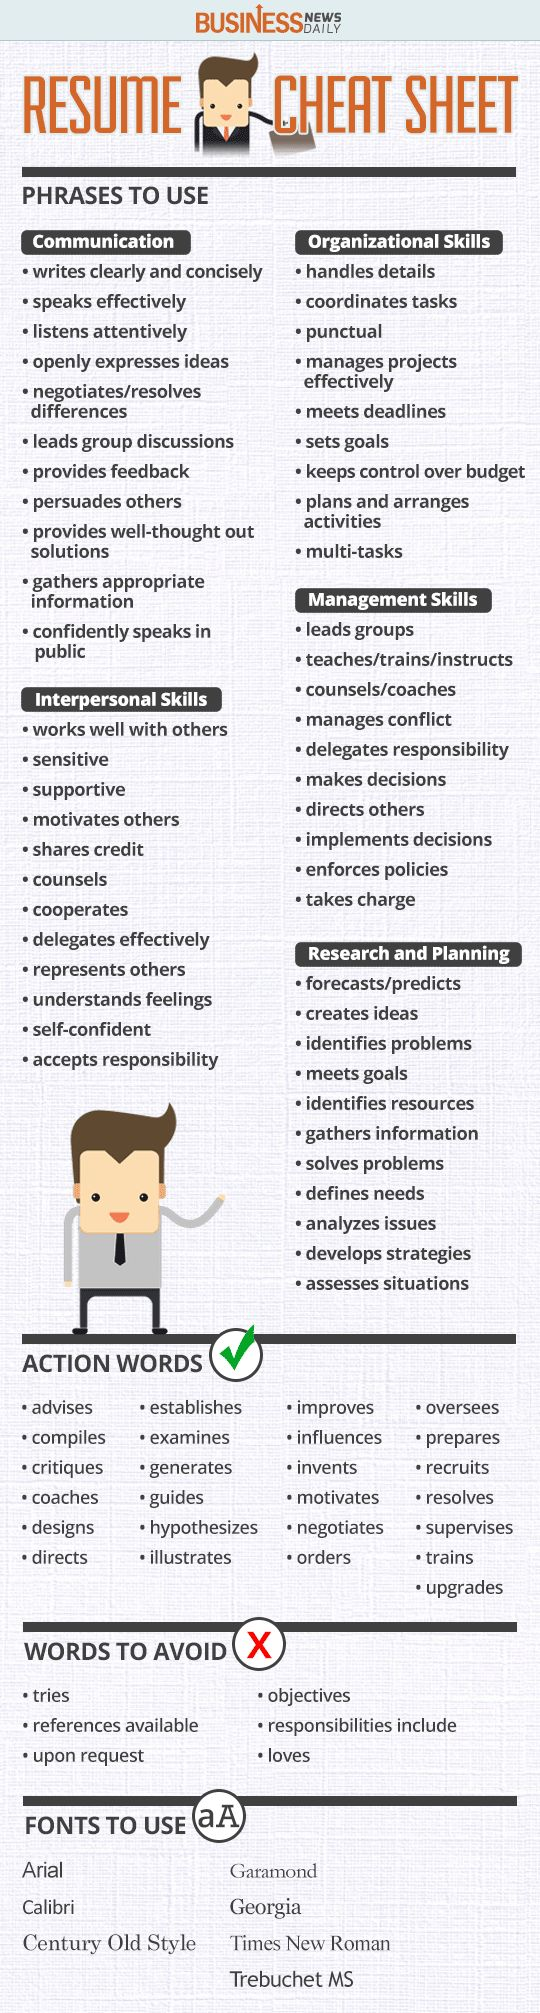 Opposenewapstandardsus  Wonderful  Ideas About Resume On Pinterest  Cv Format Resume  With Goodlooking Resume Cheat Sheet Infographic Andrews Almost Done With A Complete Unit On Employment Which With Awesome How To Make A Killer Resume Also Builder Resume In Addition College Admission Resume Template And Words To Use In Resumes As Well As Example Of Bad Resume Additionally Product Designer Resume From Pinterestcom With Opposenewapstandardsus  Goodlooking  Ideas About Resume On Pinterest  Cv Format Resume  With Awesome Resume Cheat Sheet Infographic Andrews Almost Done With A Complete Unit On Employment Which And Wonderful How To Make A Killer Resume Also Builder Resume In Addition College Admission Resume Template From Pinterestcom